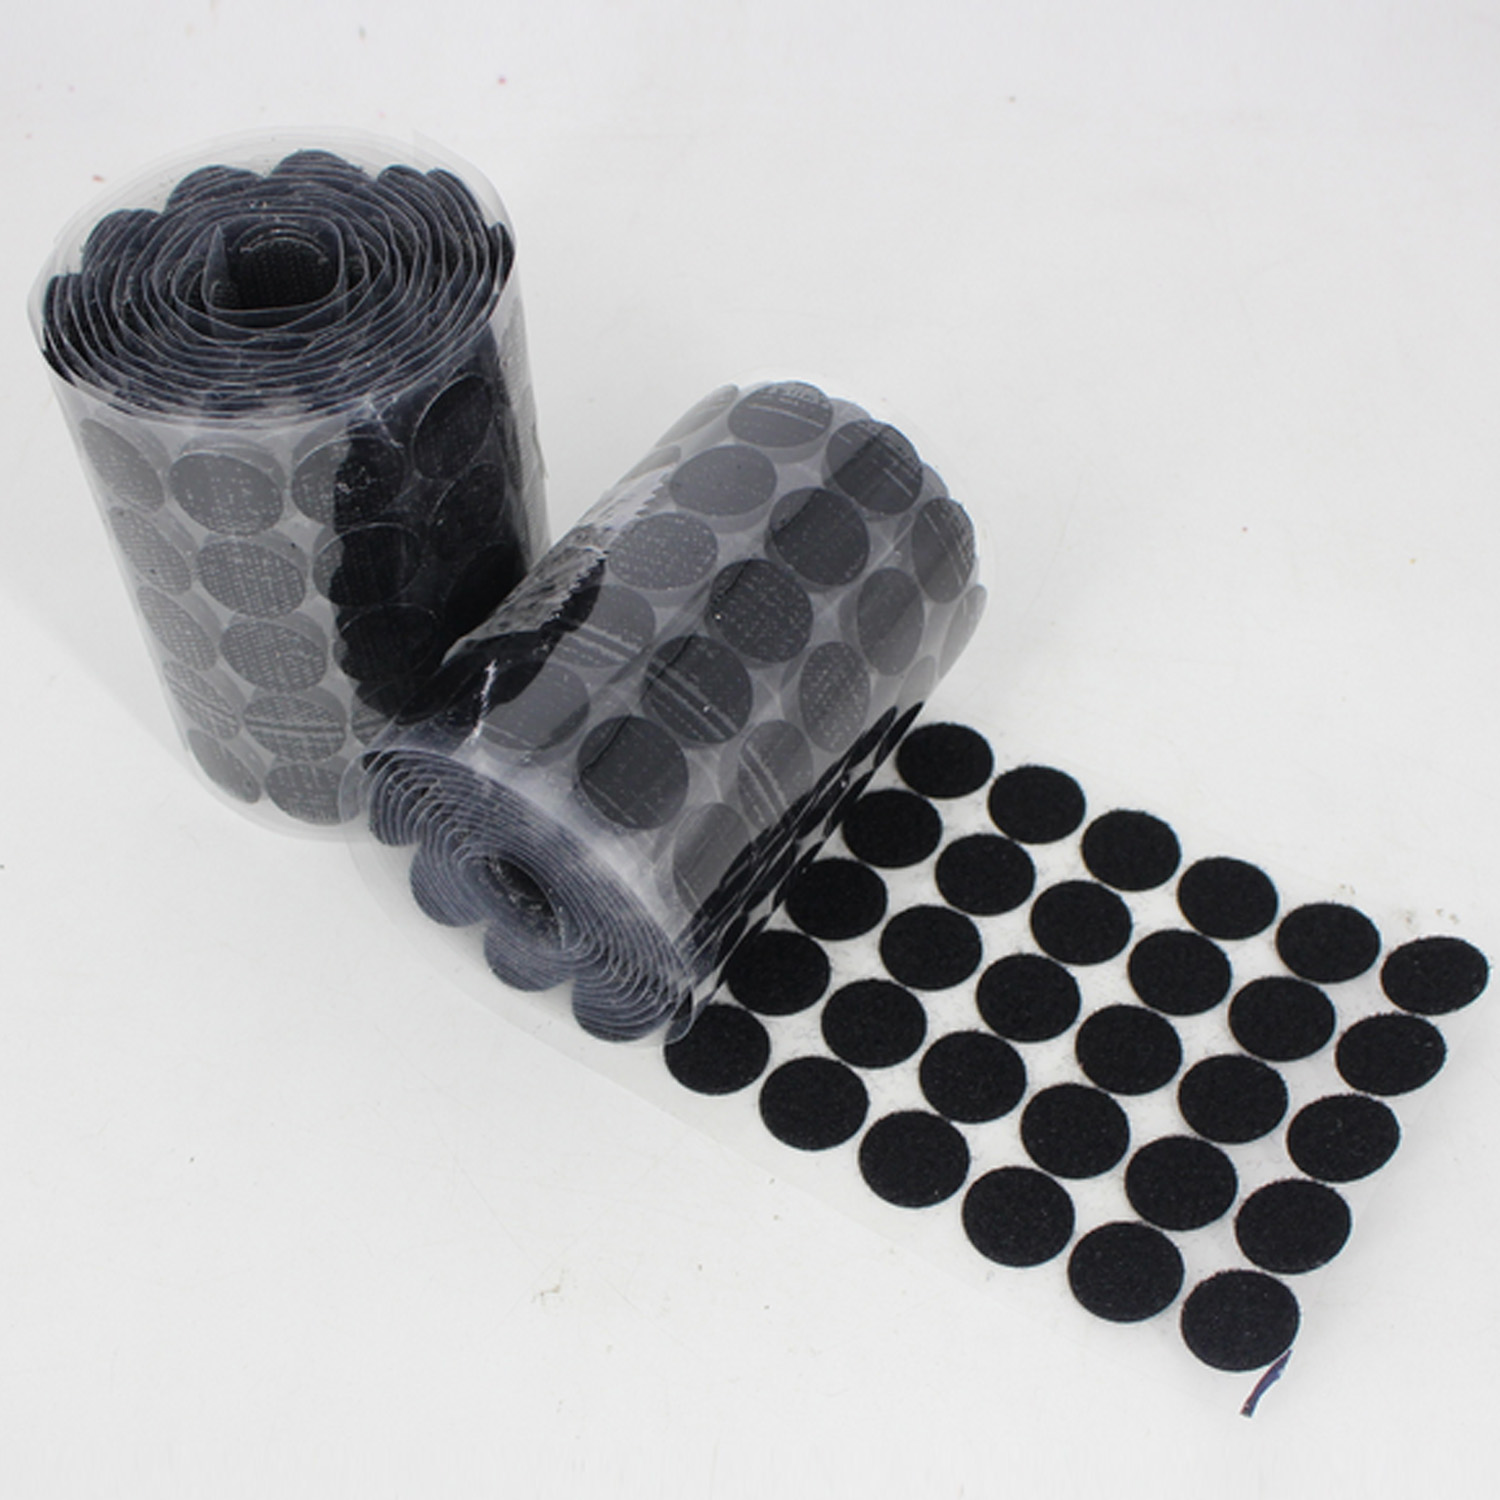 100 Pairs 20mm Black Nylon Fabric Sticky Back Round Coins Hook And Loop Self Adhesive Fastener Dots Tapes Hook Loop Tape